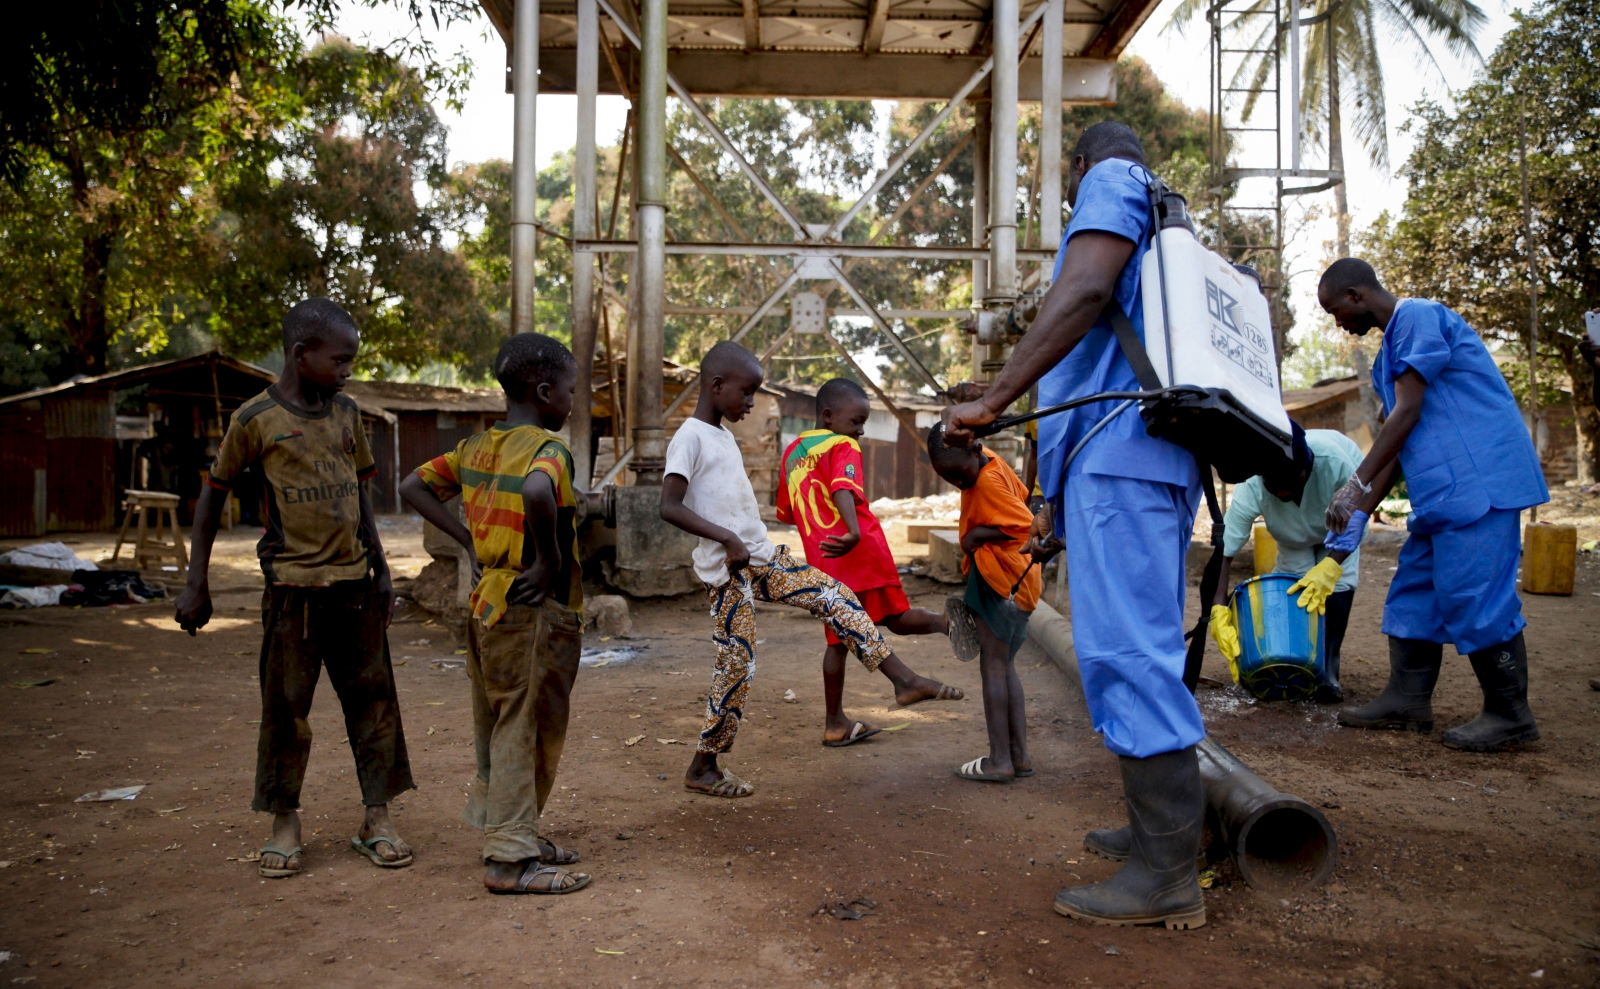 Ebola outbreak an avoidable tragedy and WHO must shoulder much of the blame - MSF